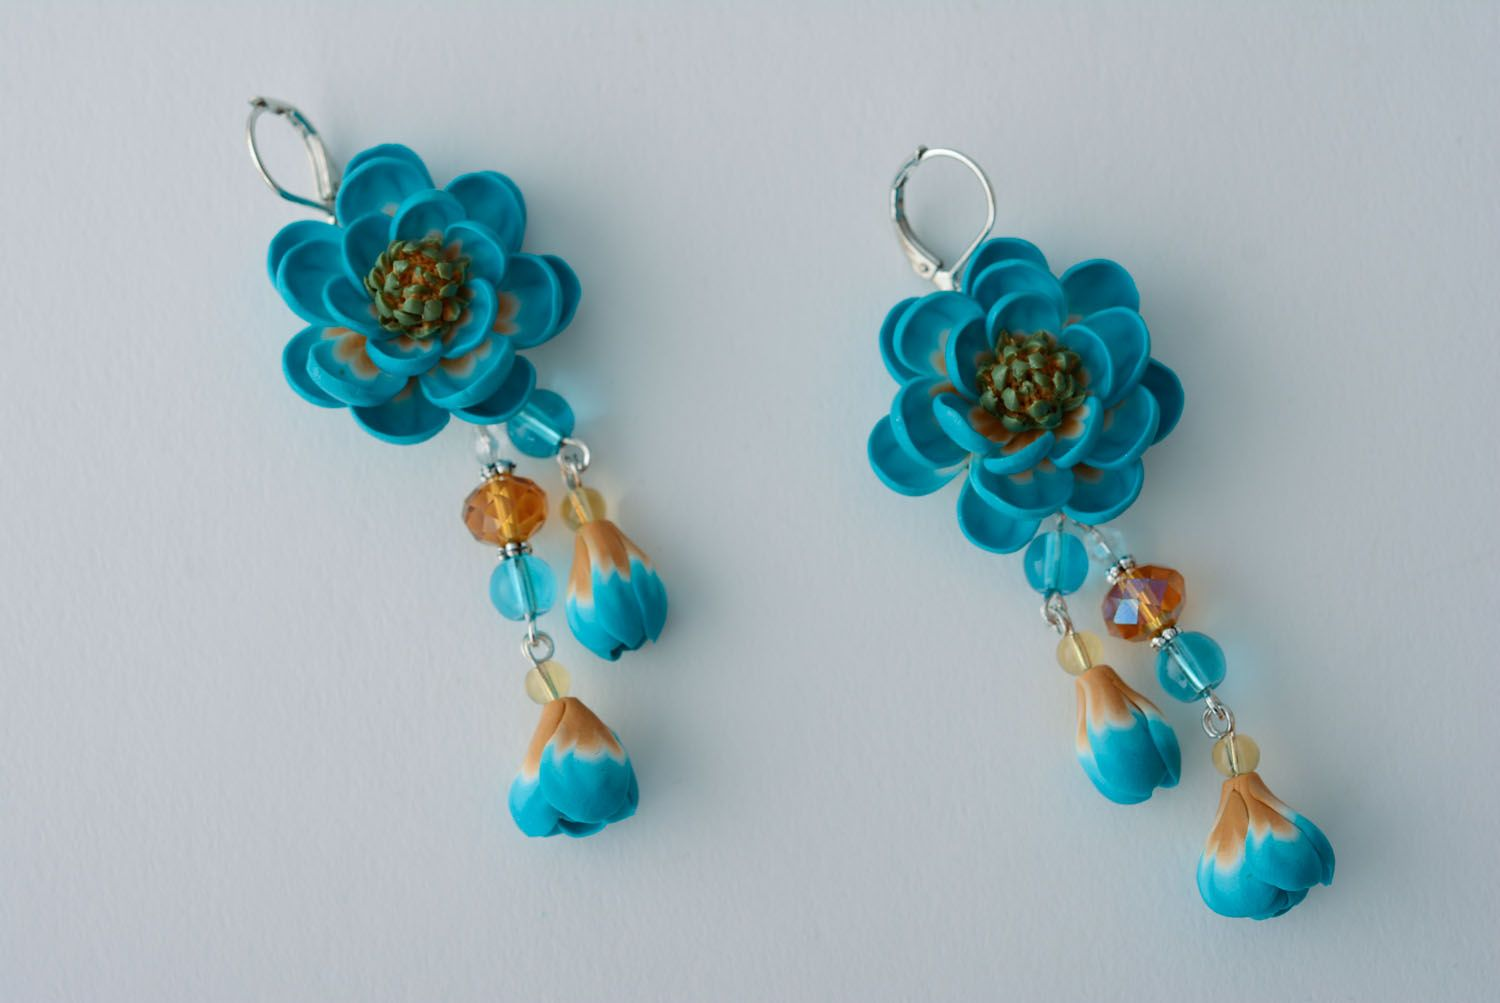 d6c1e176d Earrings with polymer clay charms on Storenvy